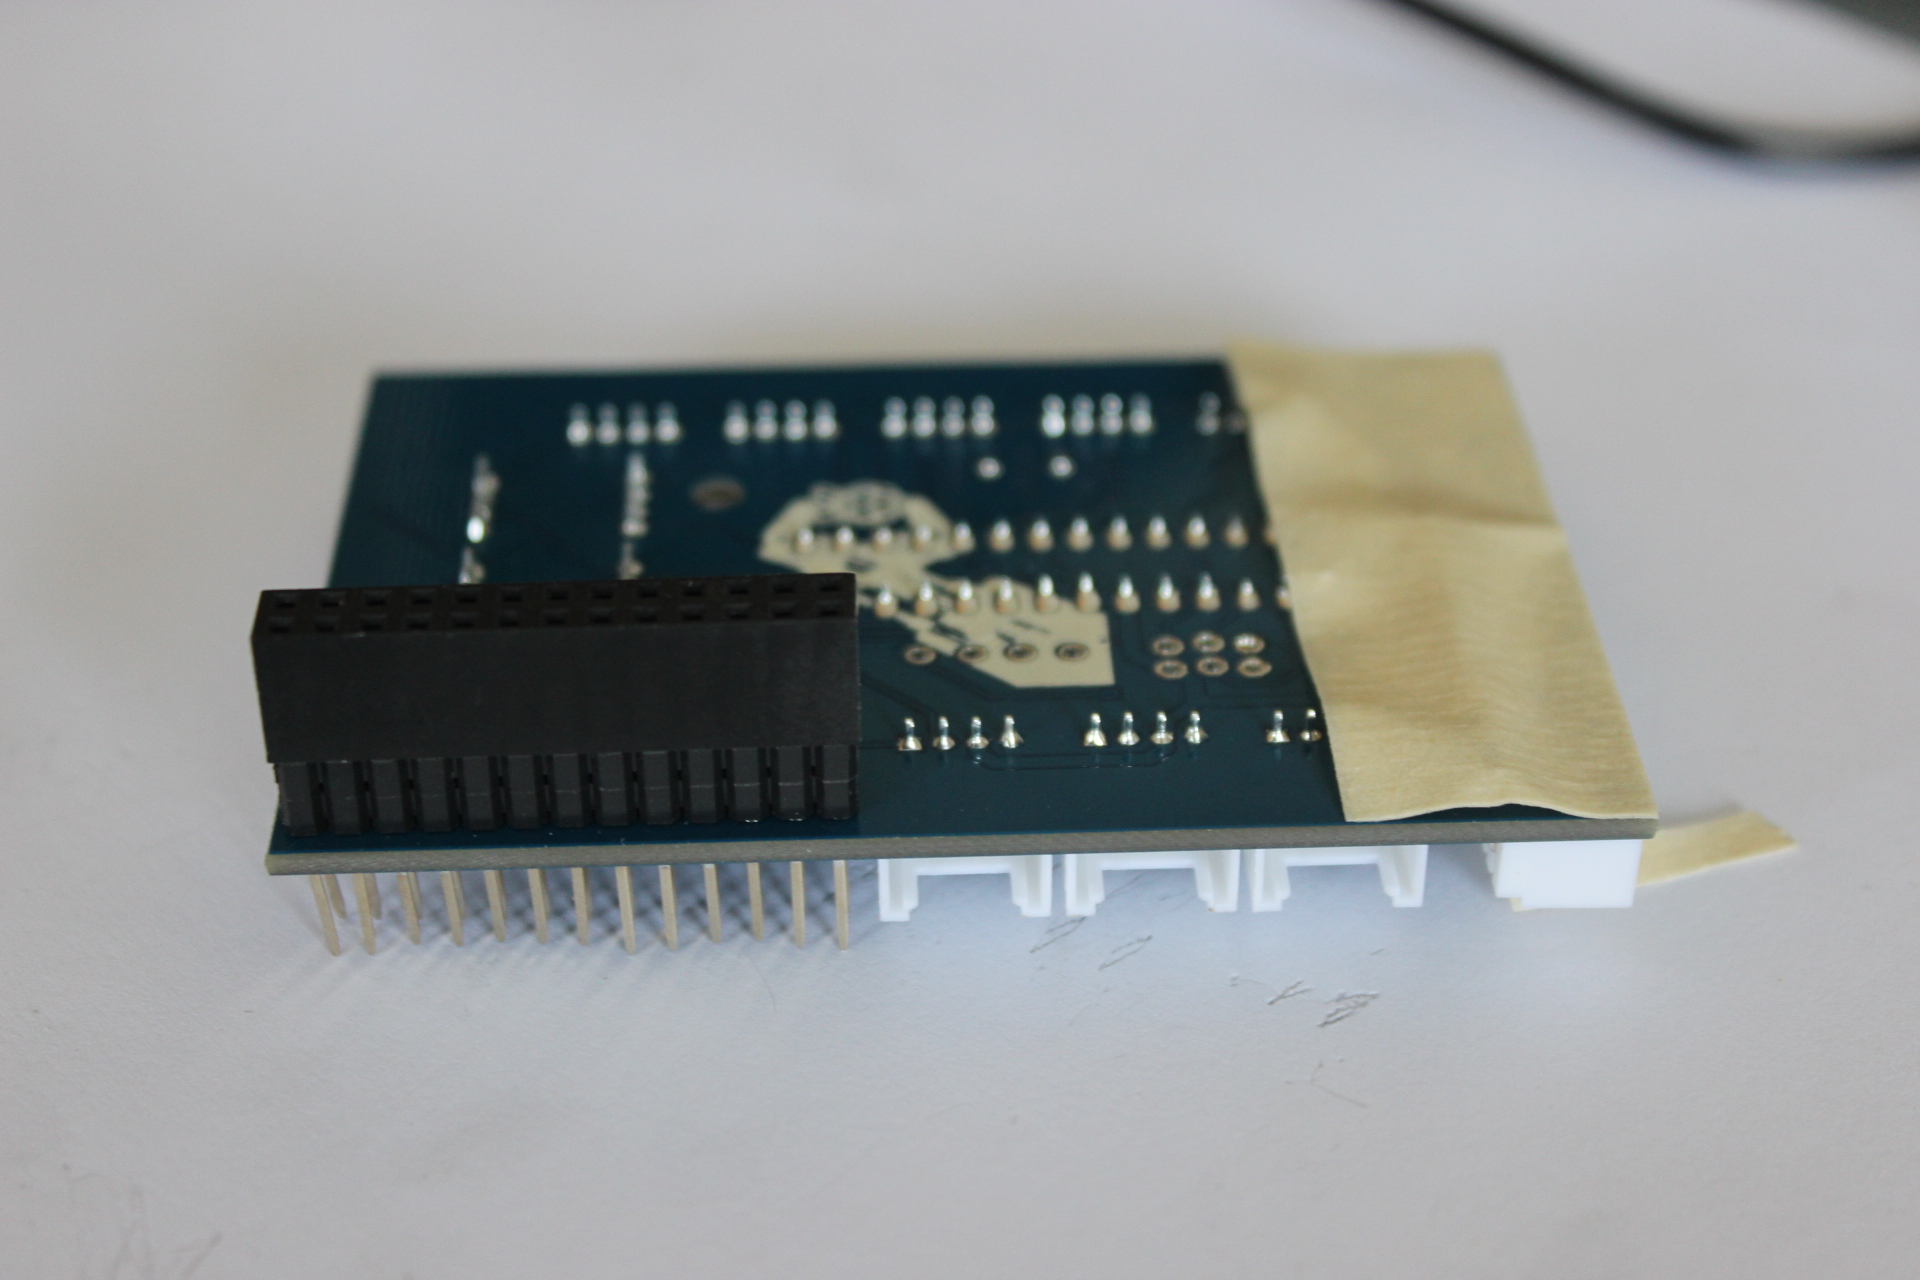 The GrovePi with the Raspberry Pi Model B+